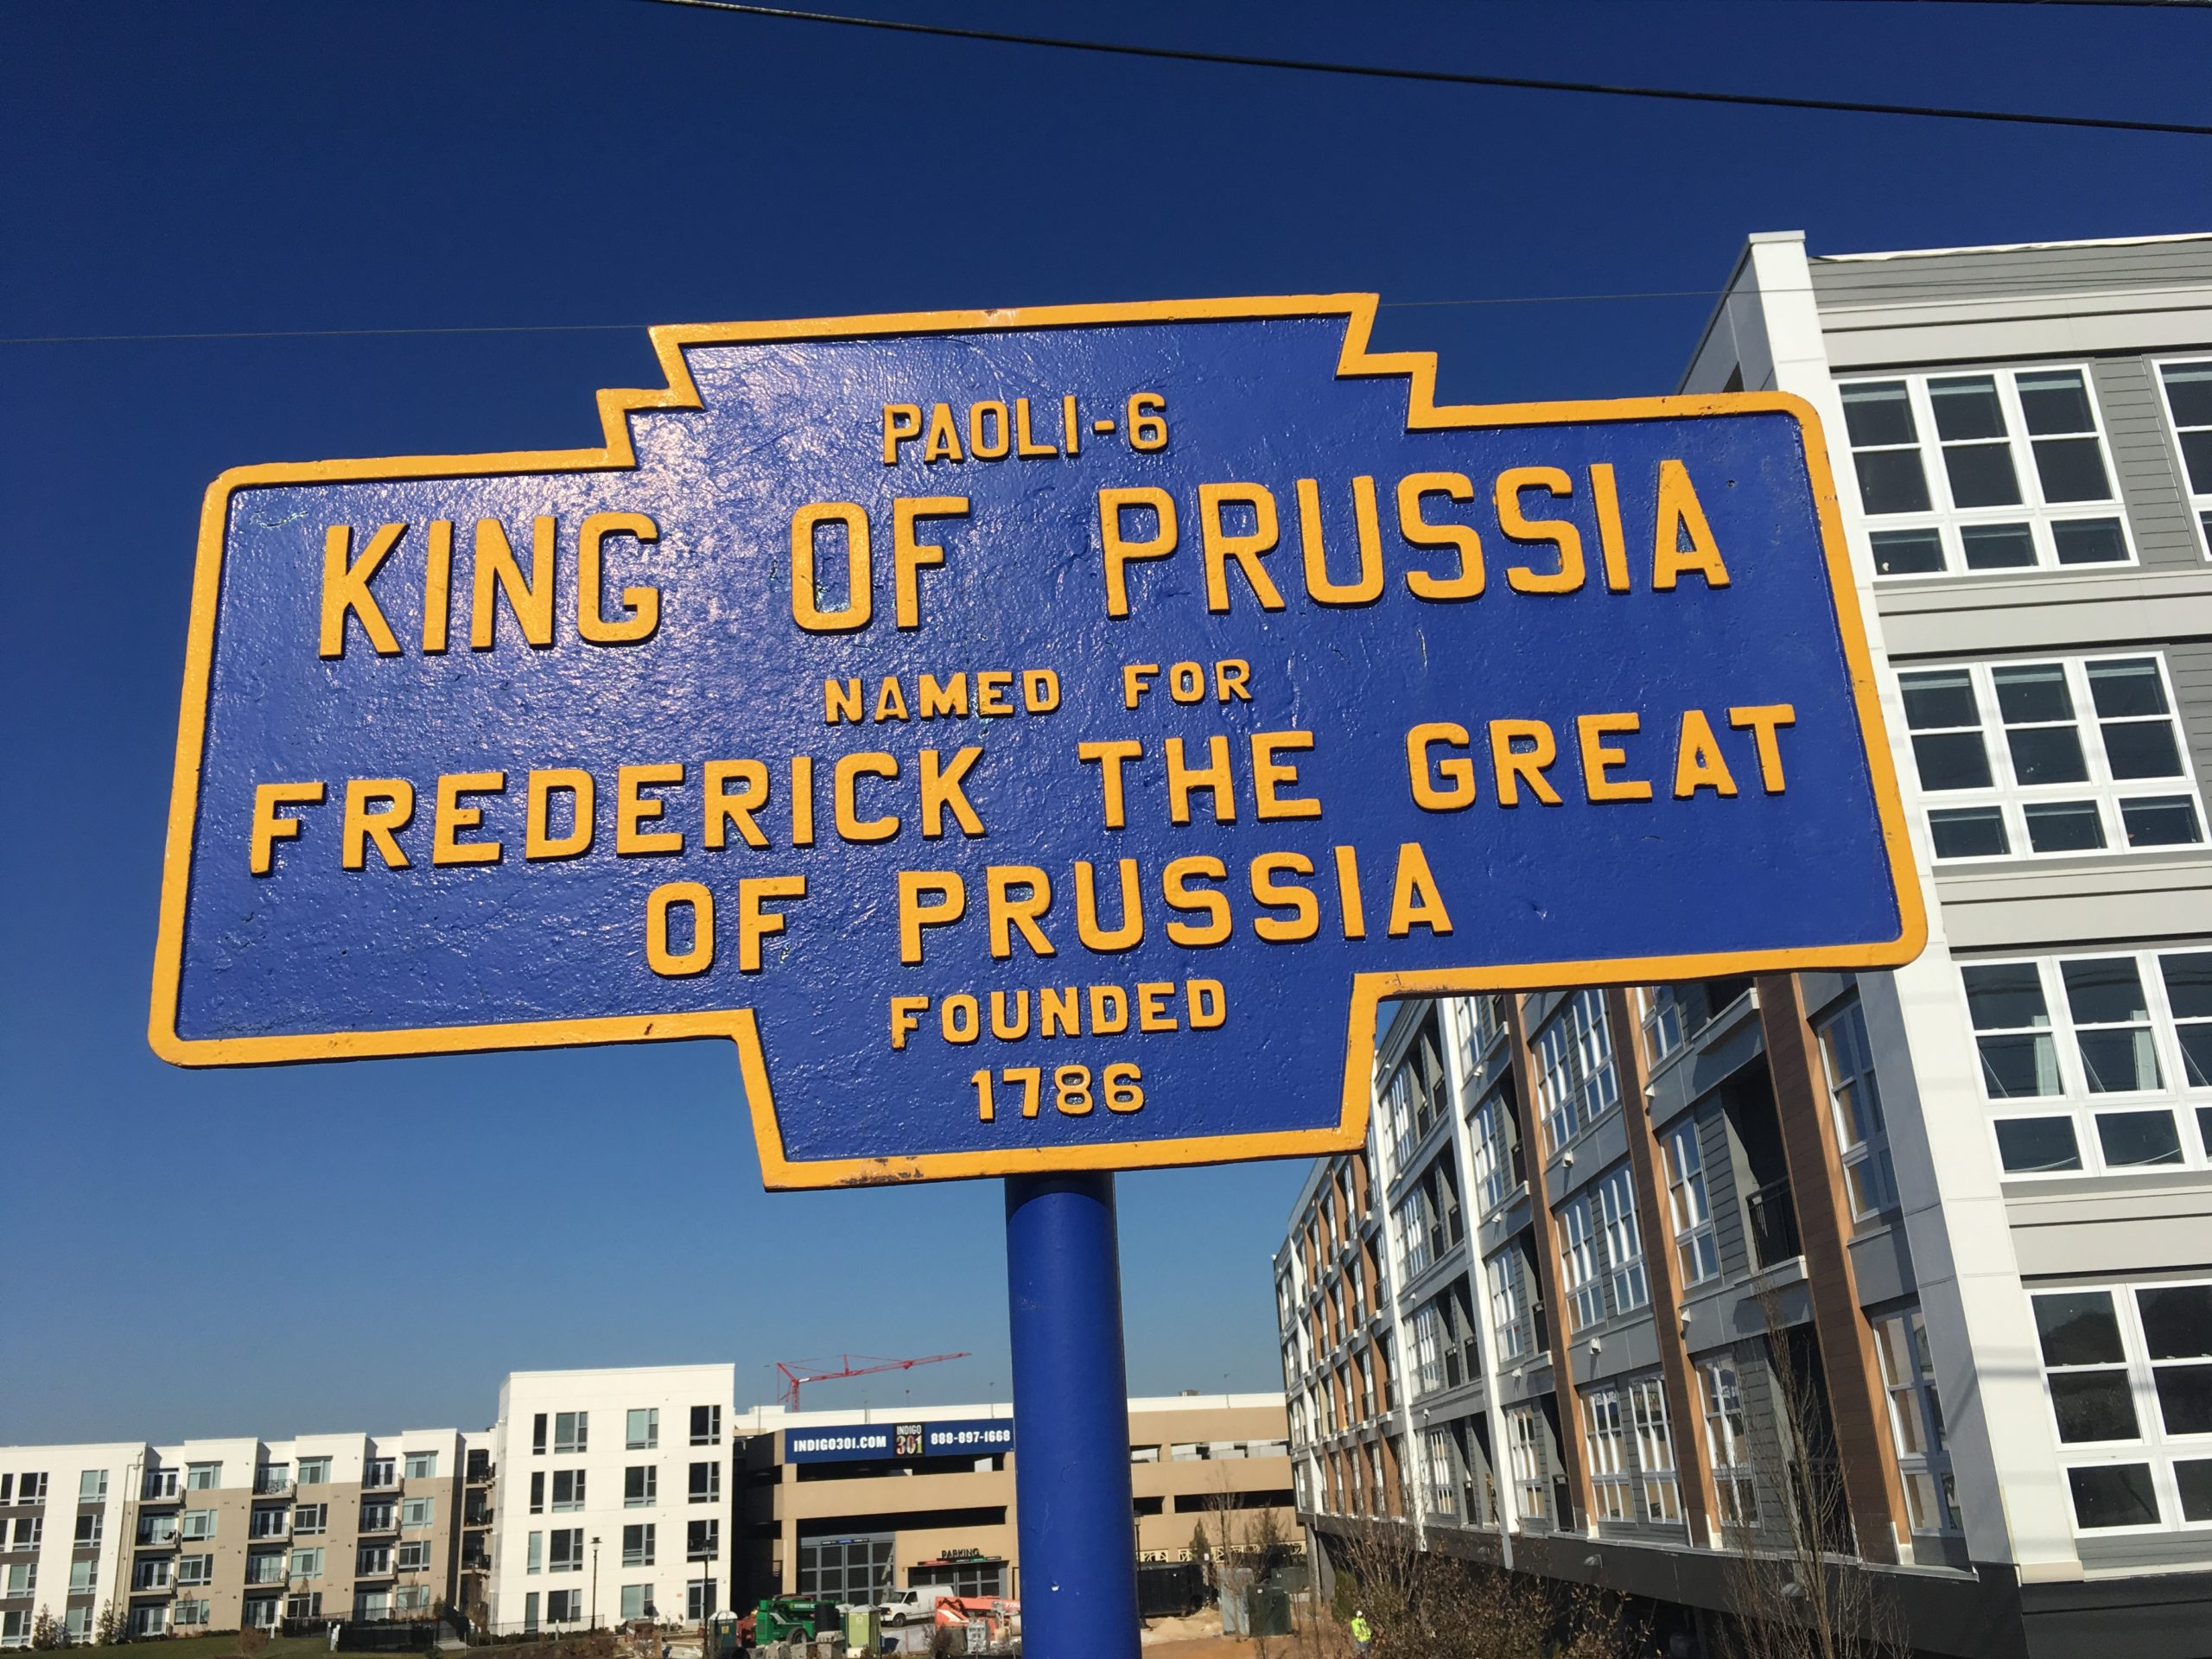 King of Prussia District issues 2018 community report, presents awards